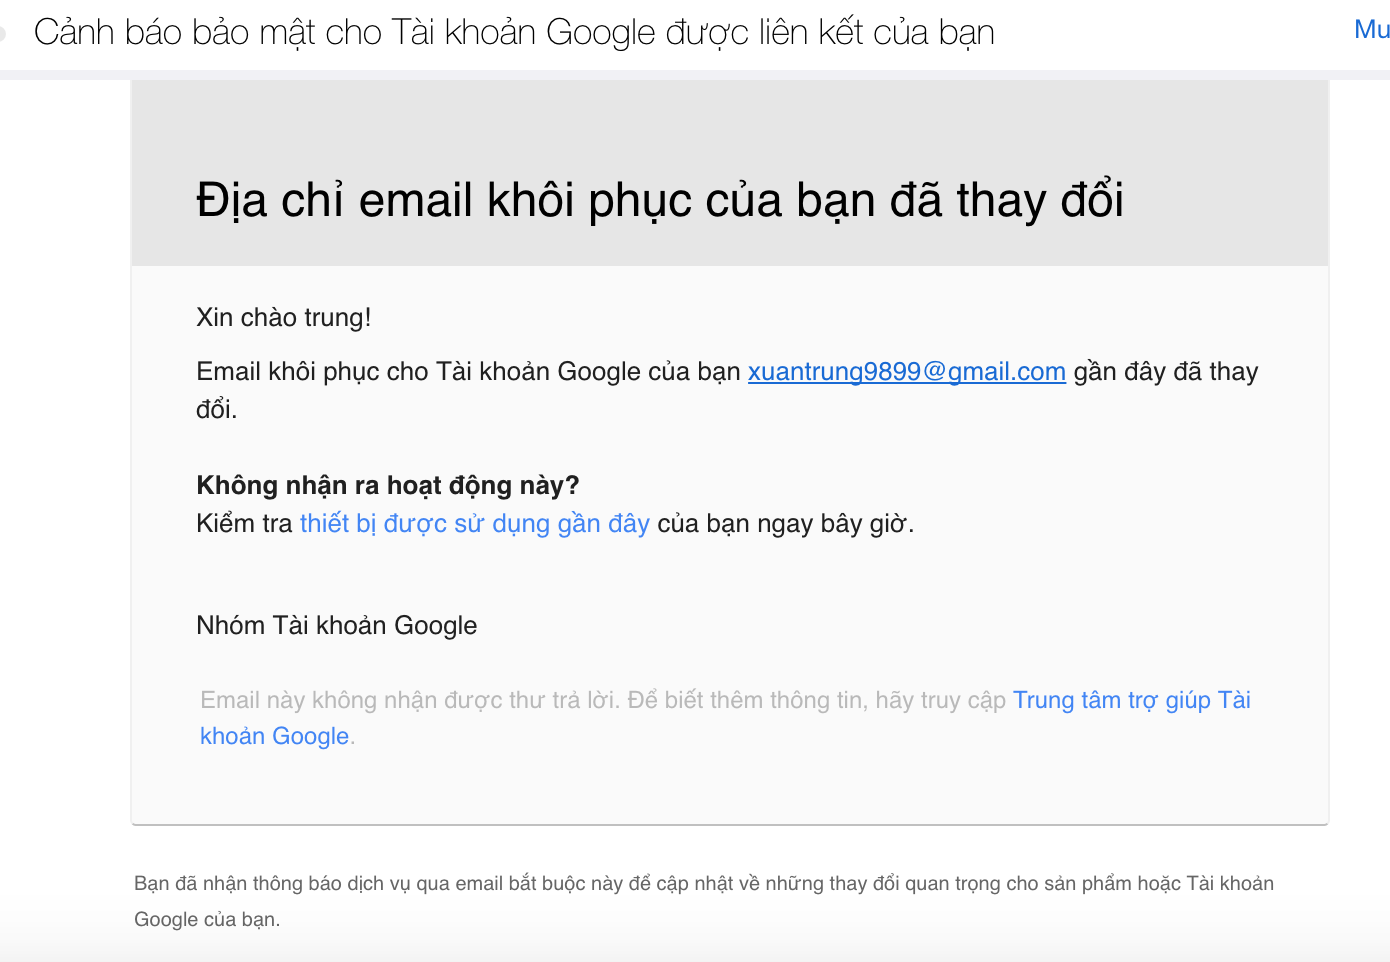 my gmail account has been hacked and changed my account info - Gmail